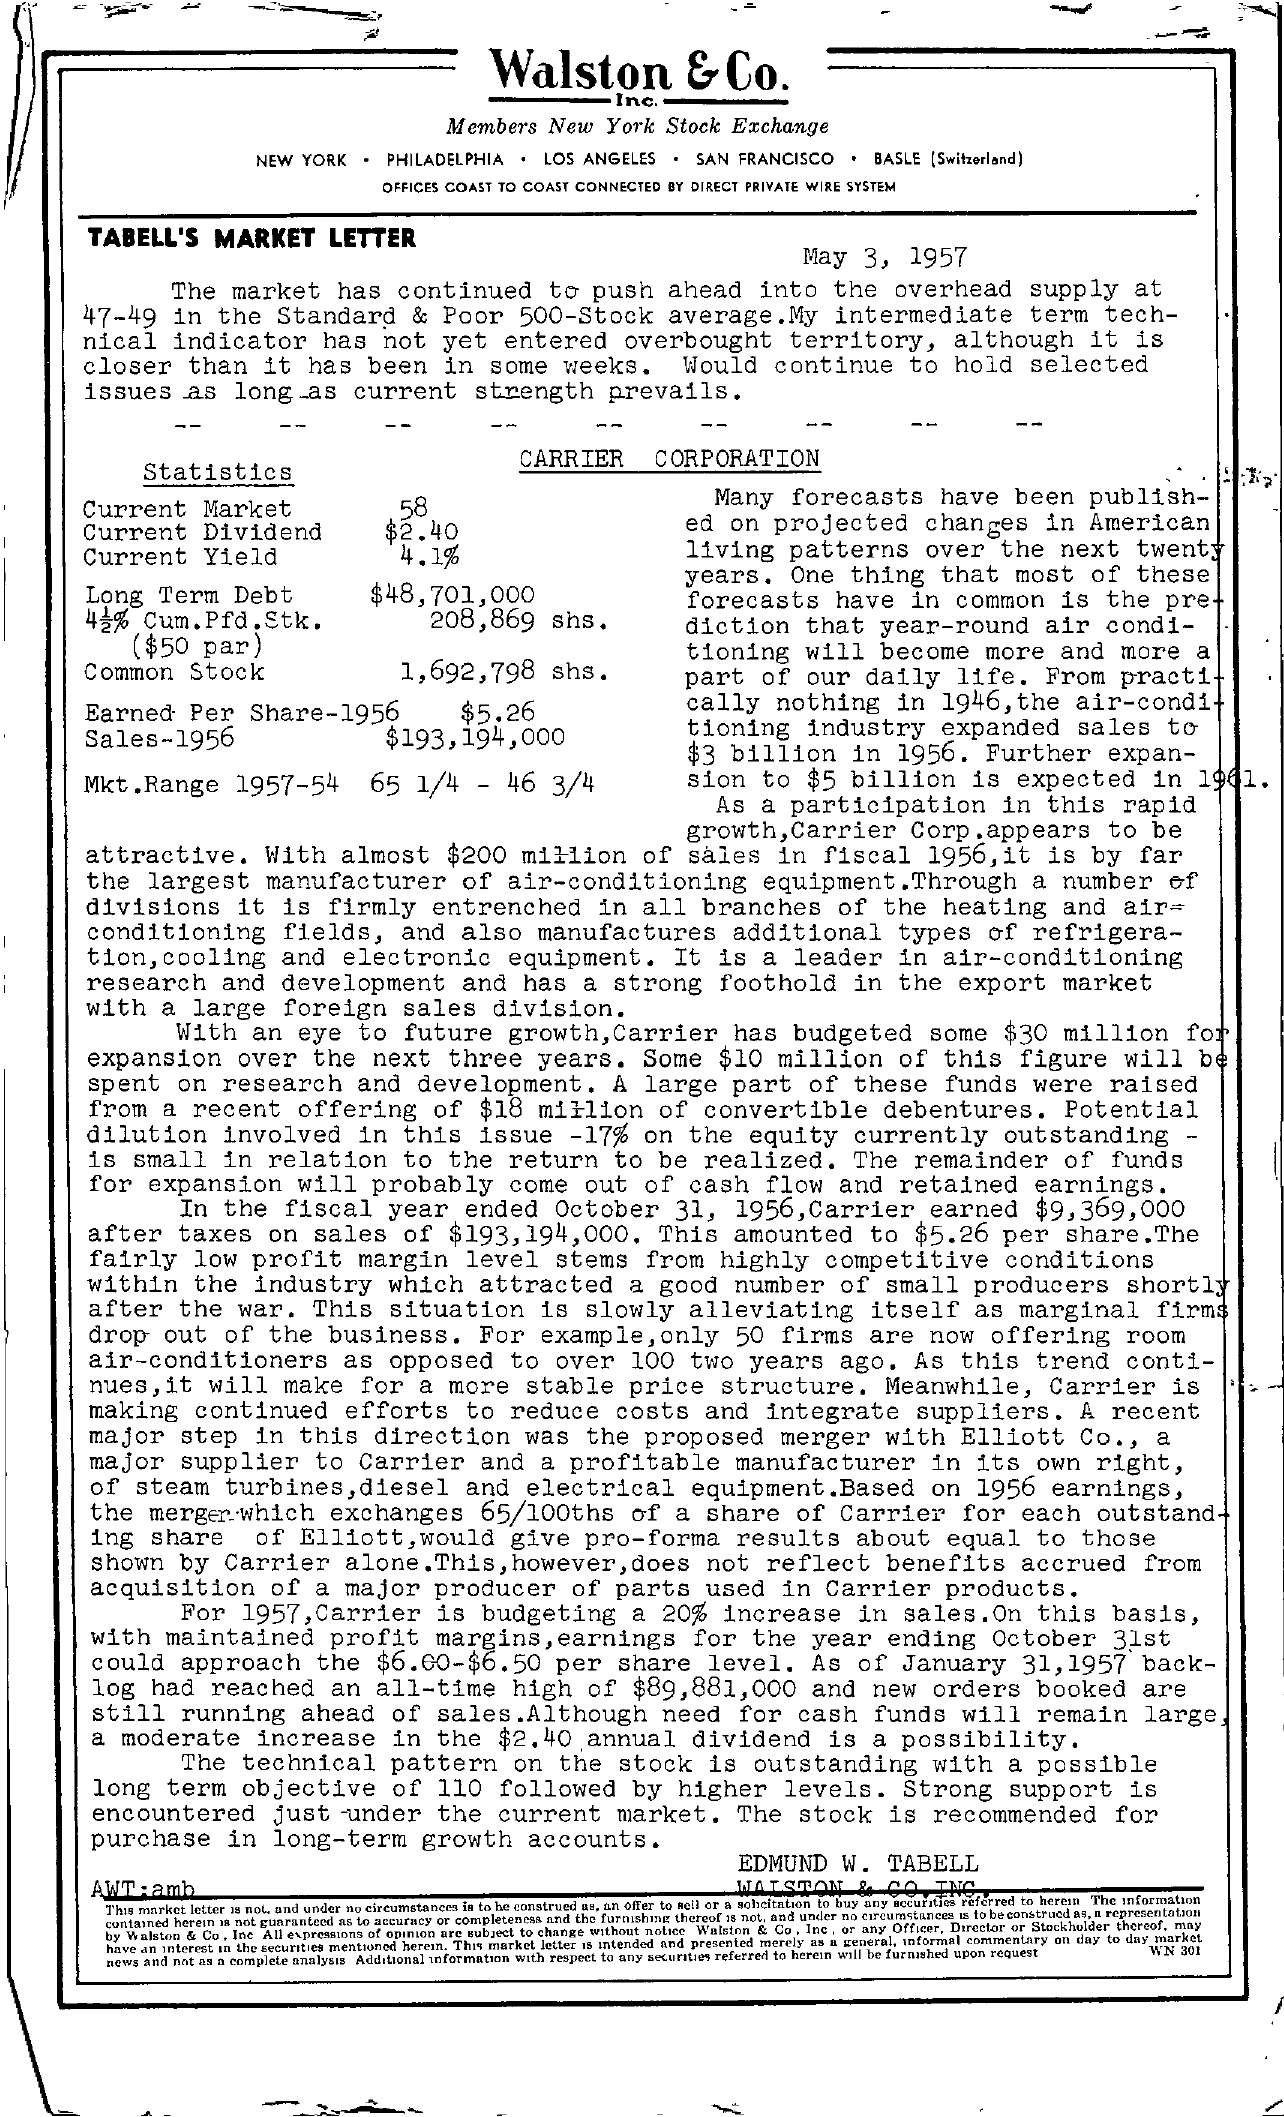 Tabell's Market Letter - May 03, 1957